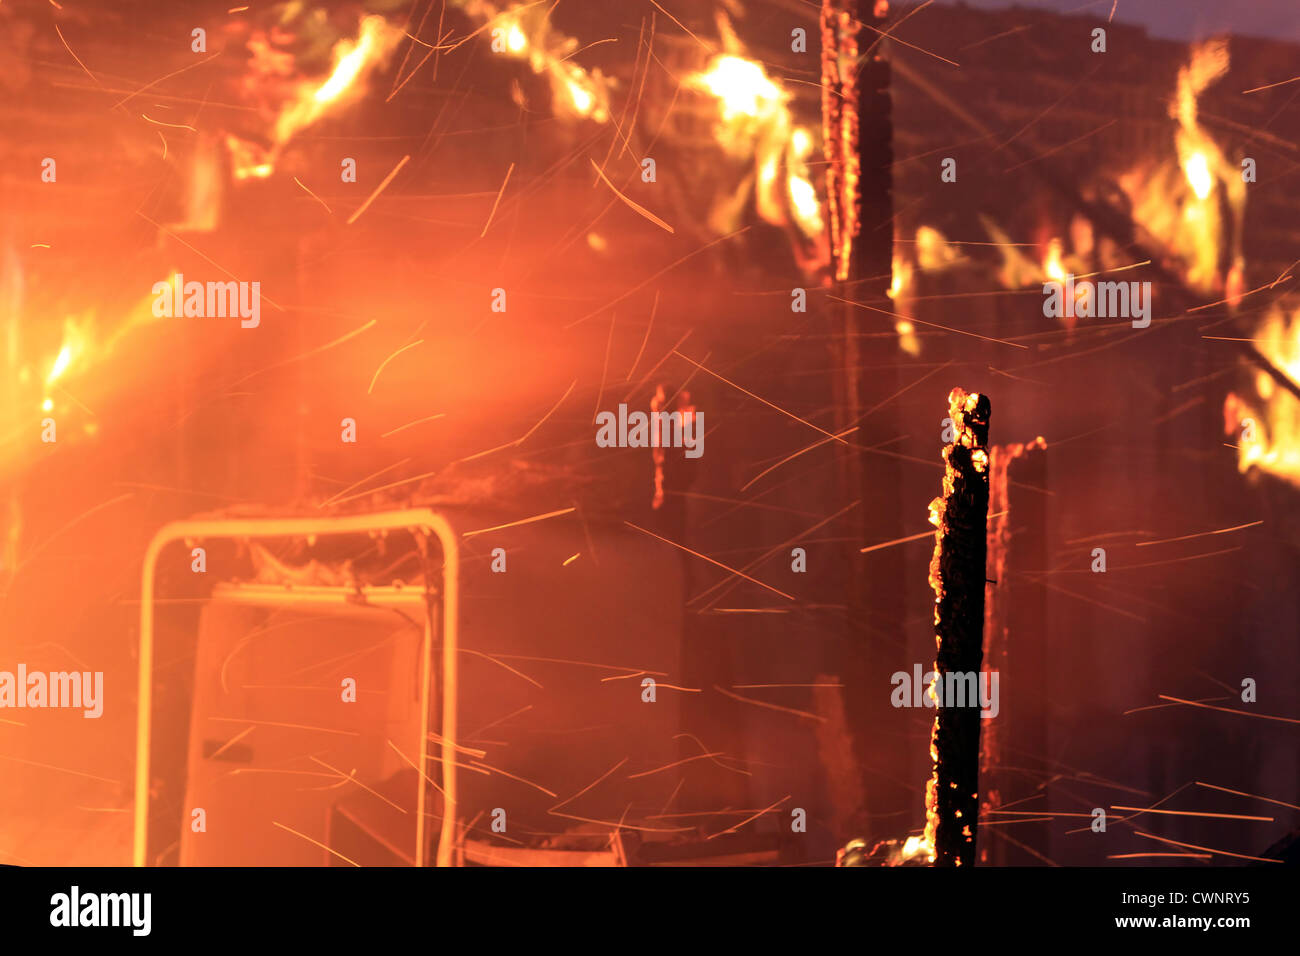 House interior destroyed by intense fire. Flames, smoke and sparks engulfing the interior of a home. - Stock Image